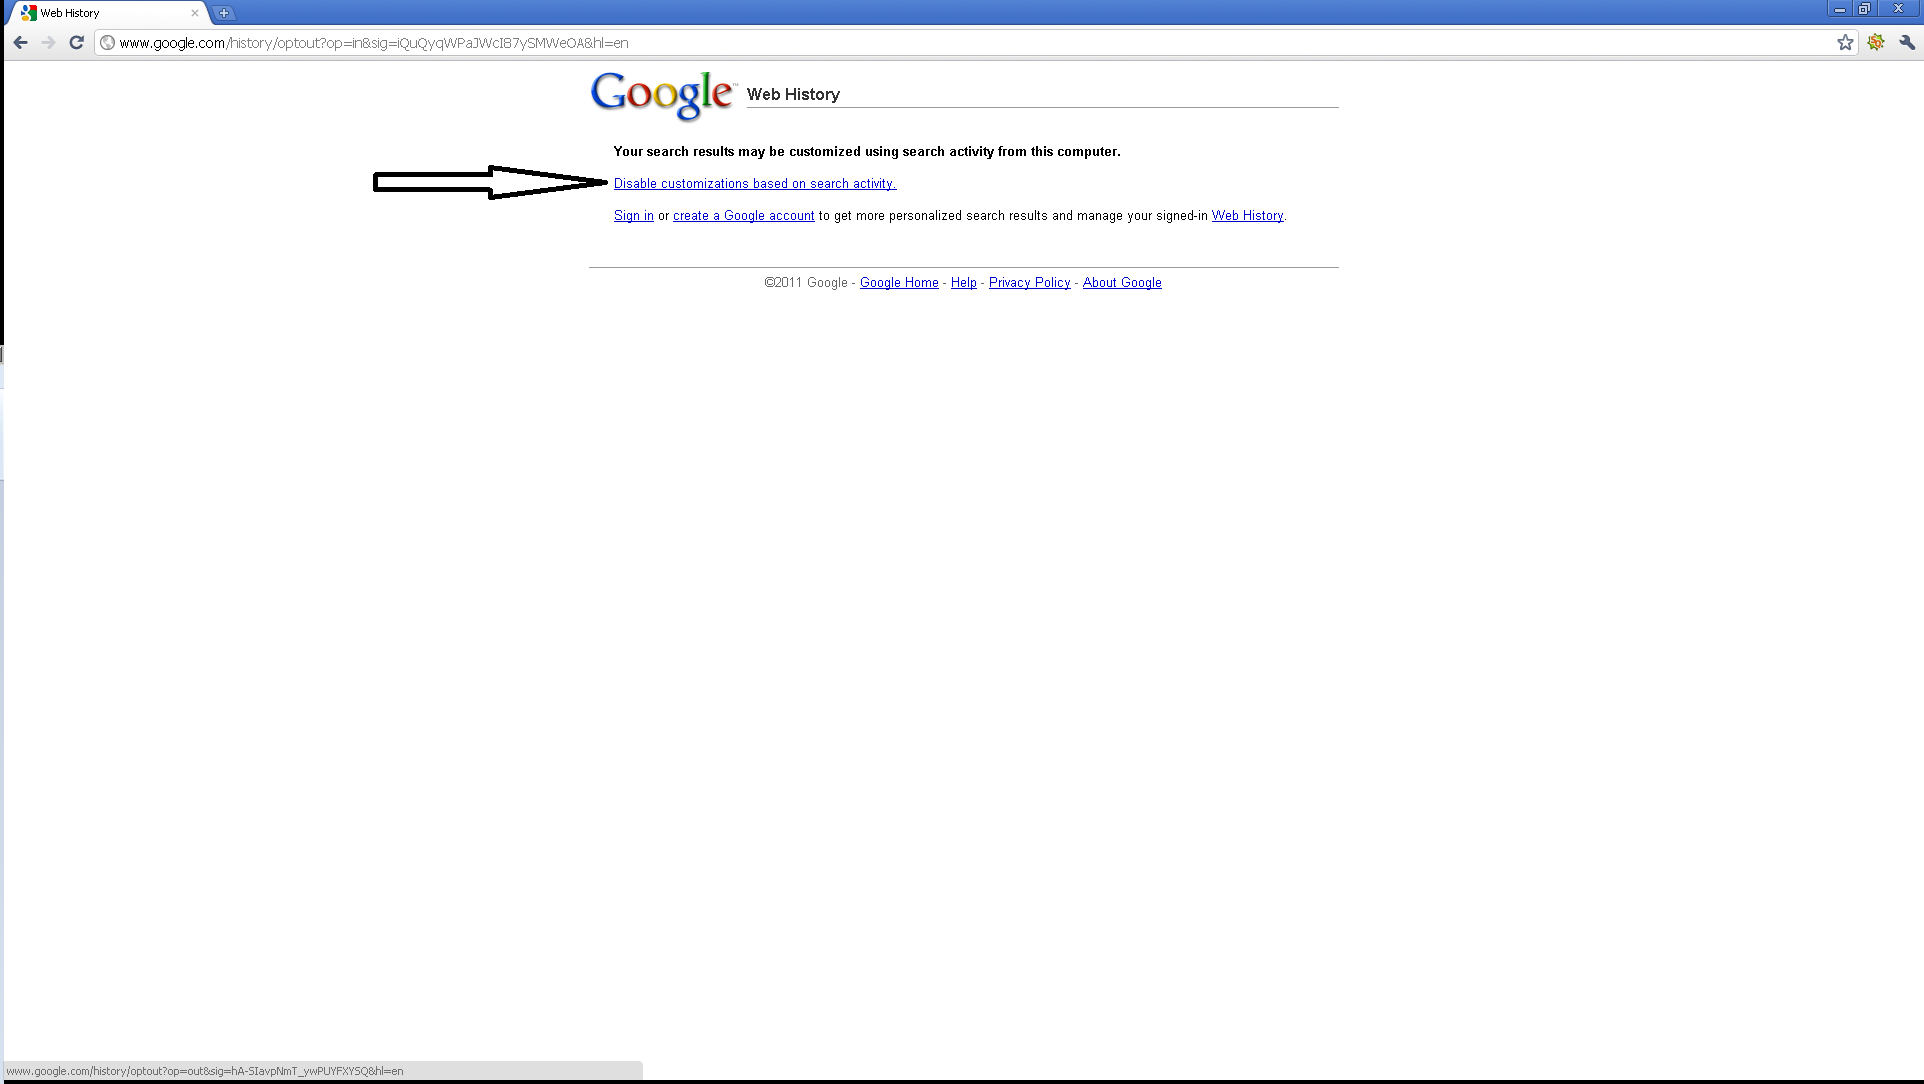 how to get my domain name in google search